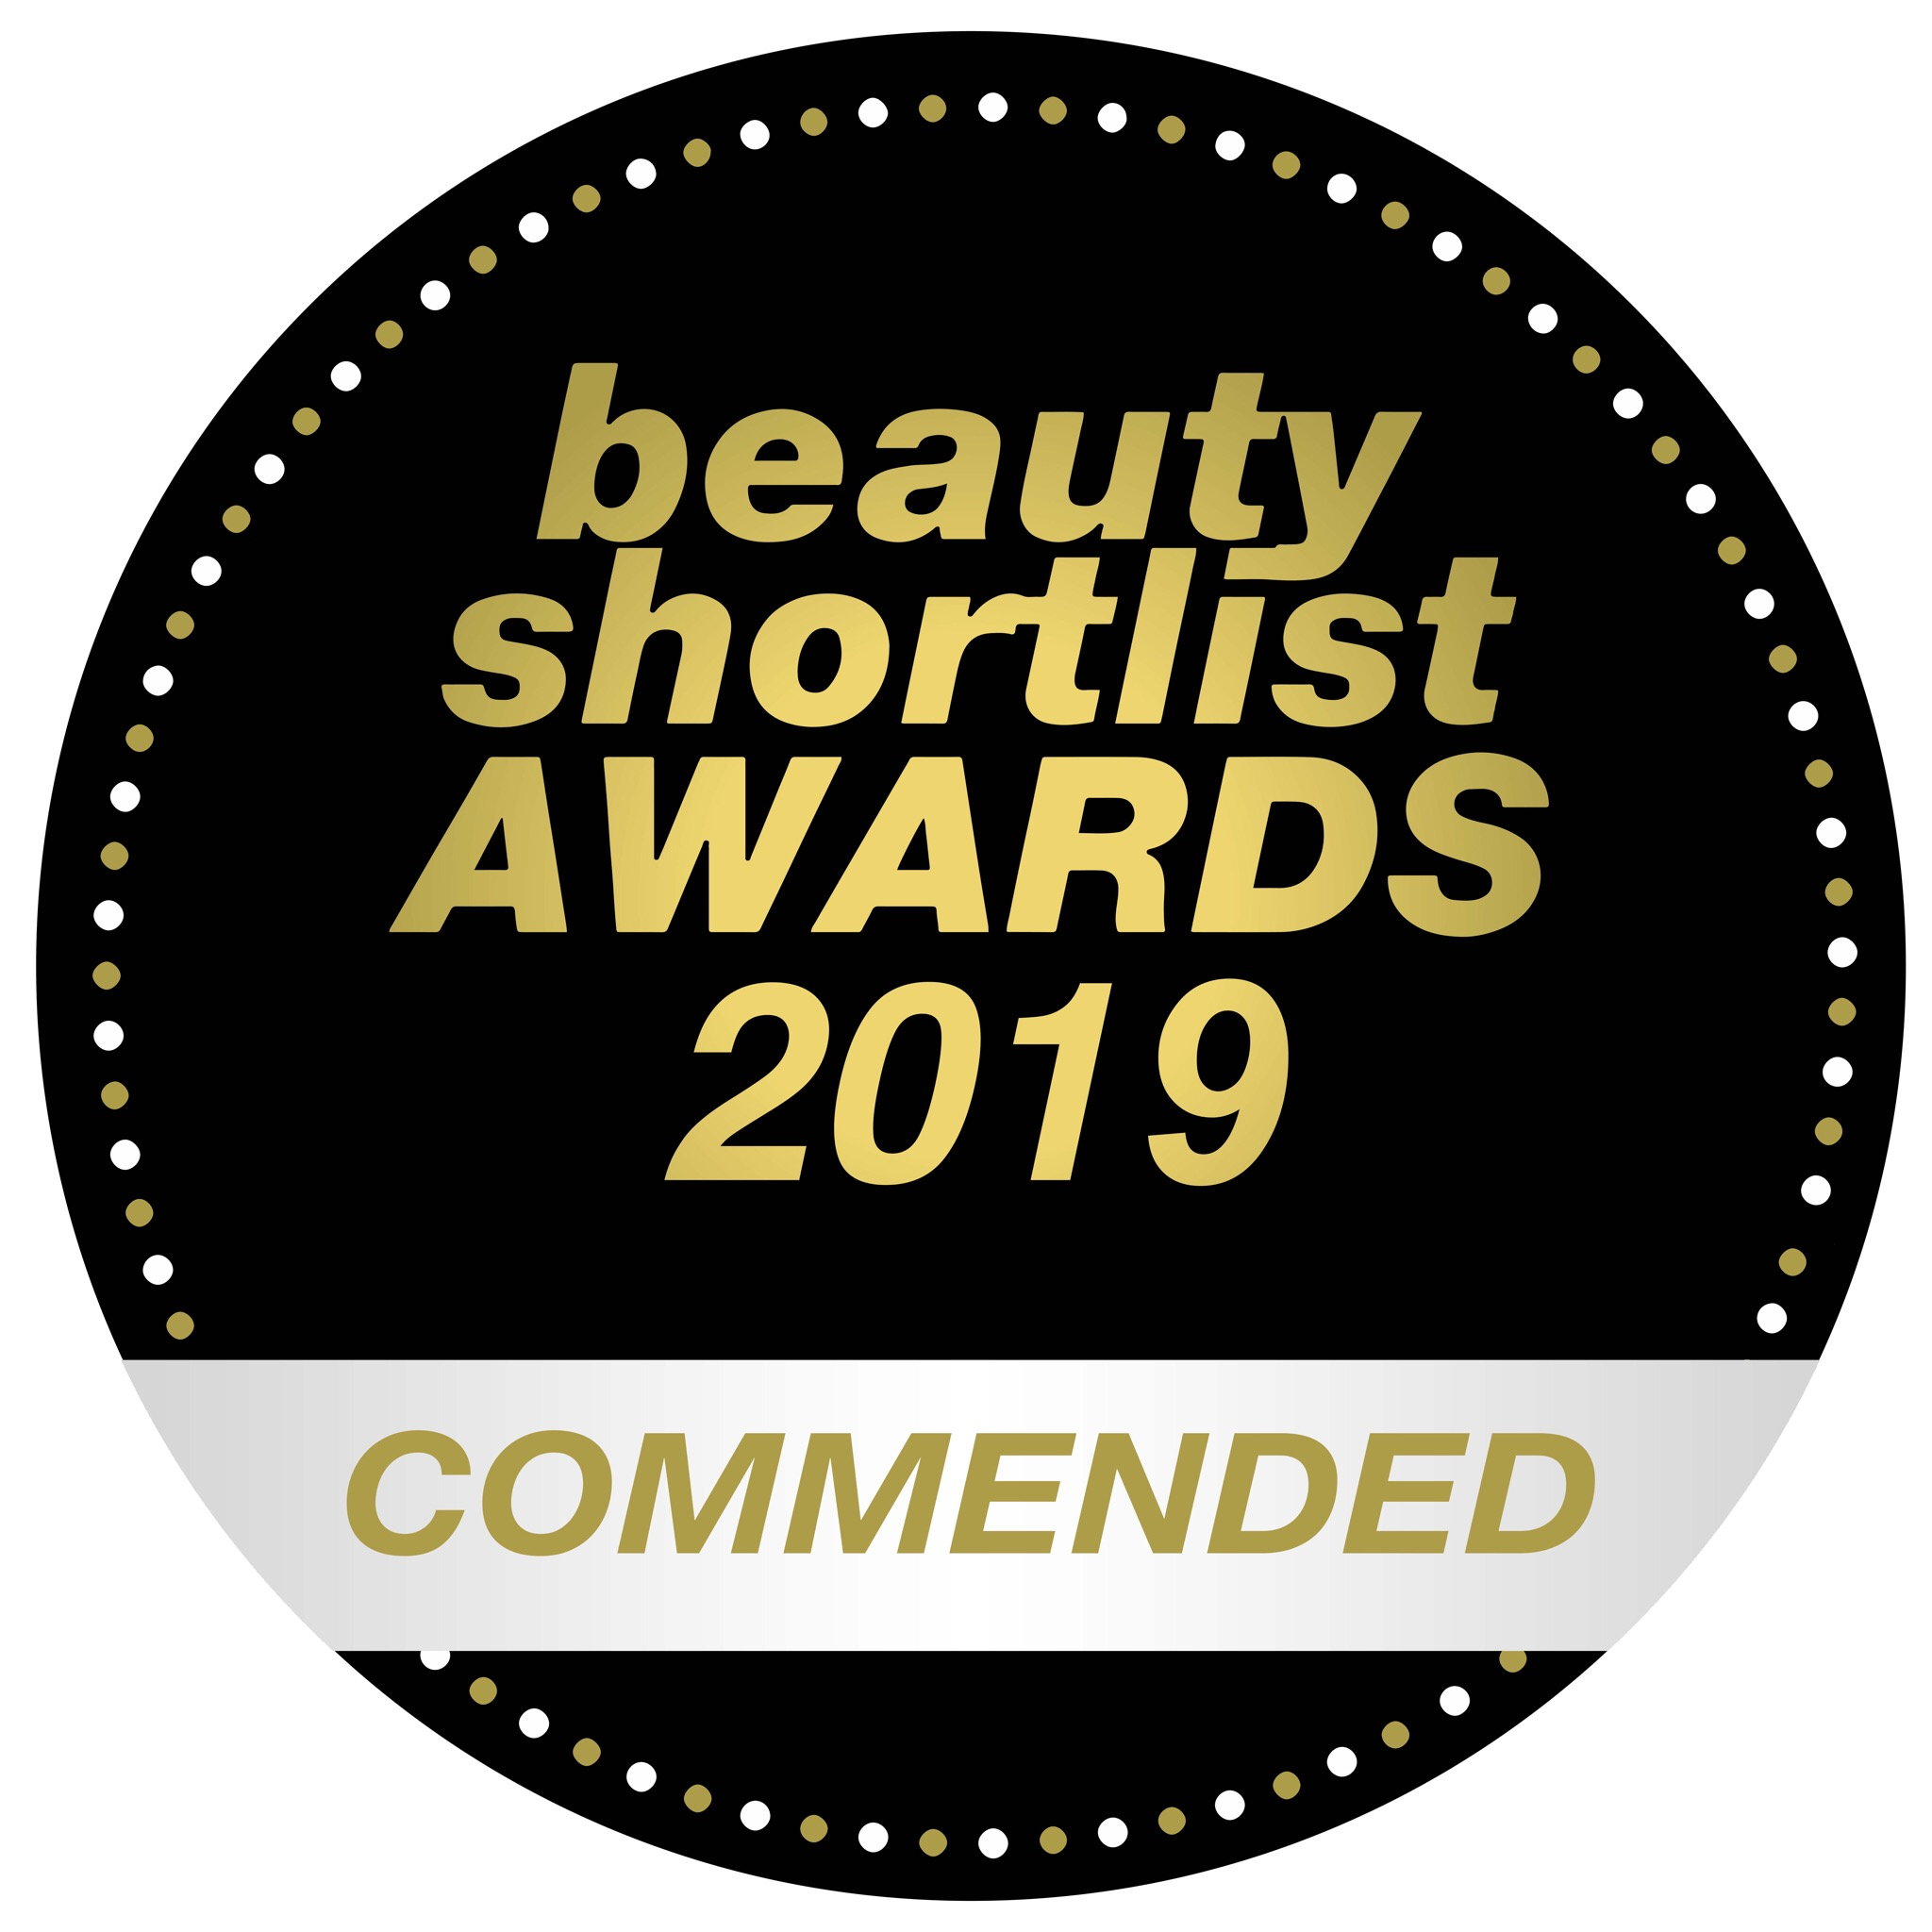 Beauty Shortlist Awards Commended